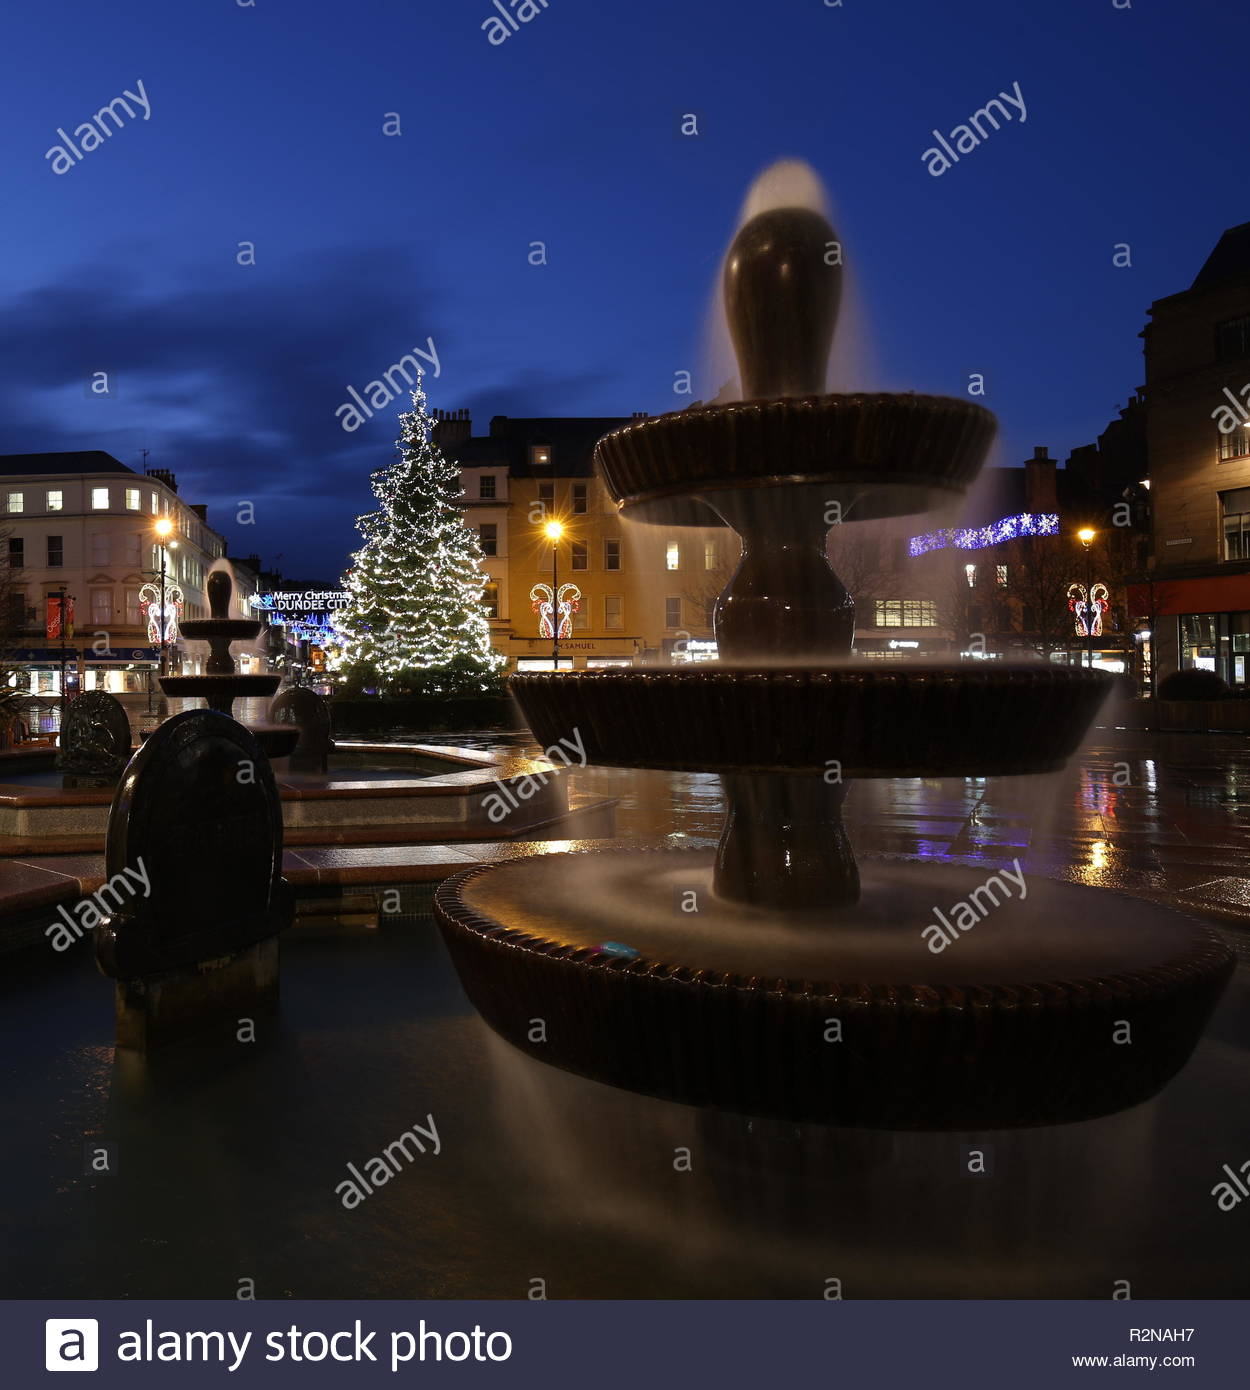 Dundee, UK. 20th November 2018. Christmas decorations in City Square Dundee after a wet and windy day in Tayside. Credit: Stephen Finn/Alamy Live News - Stock Image